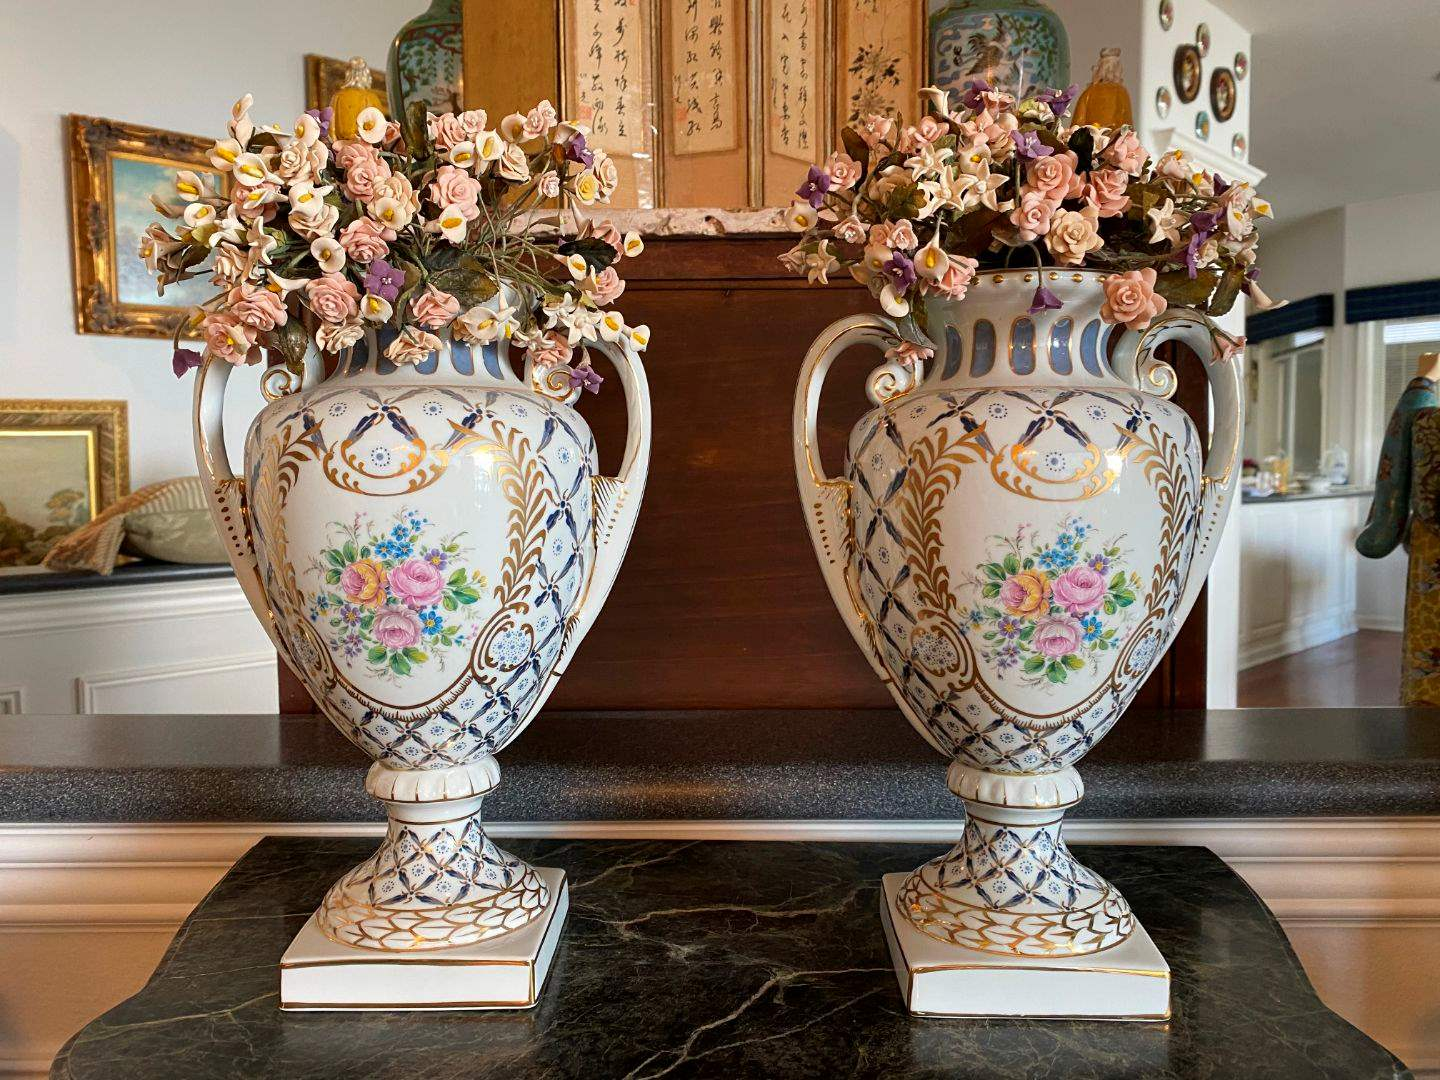 Lot # 47 - Two Beautiful Ceramic Vases w/Faux Clay Flowers (main image)